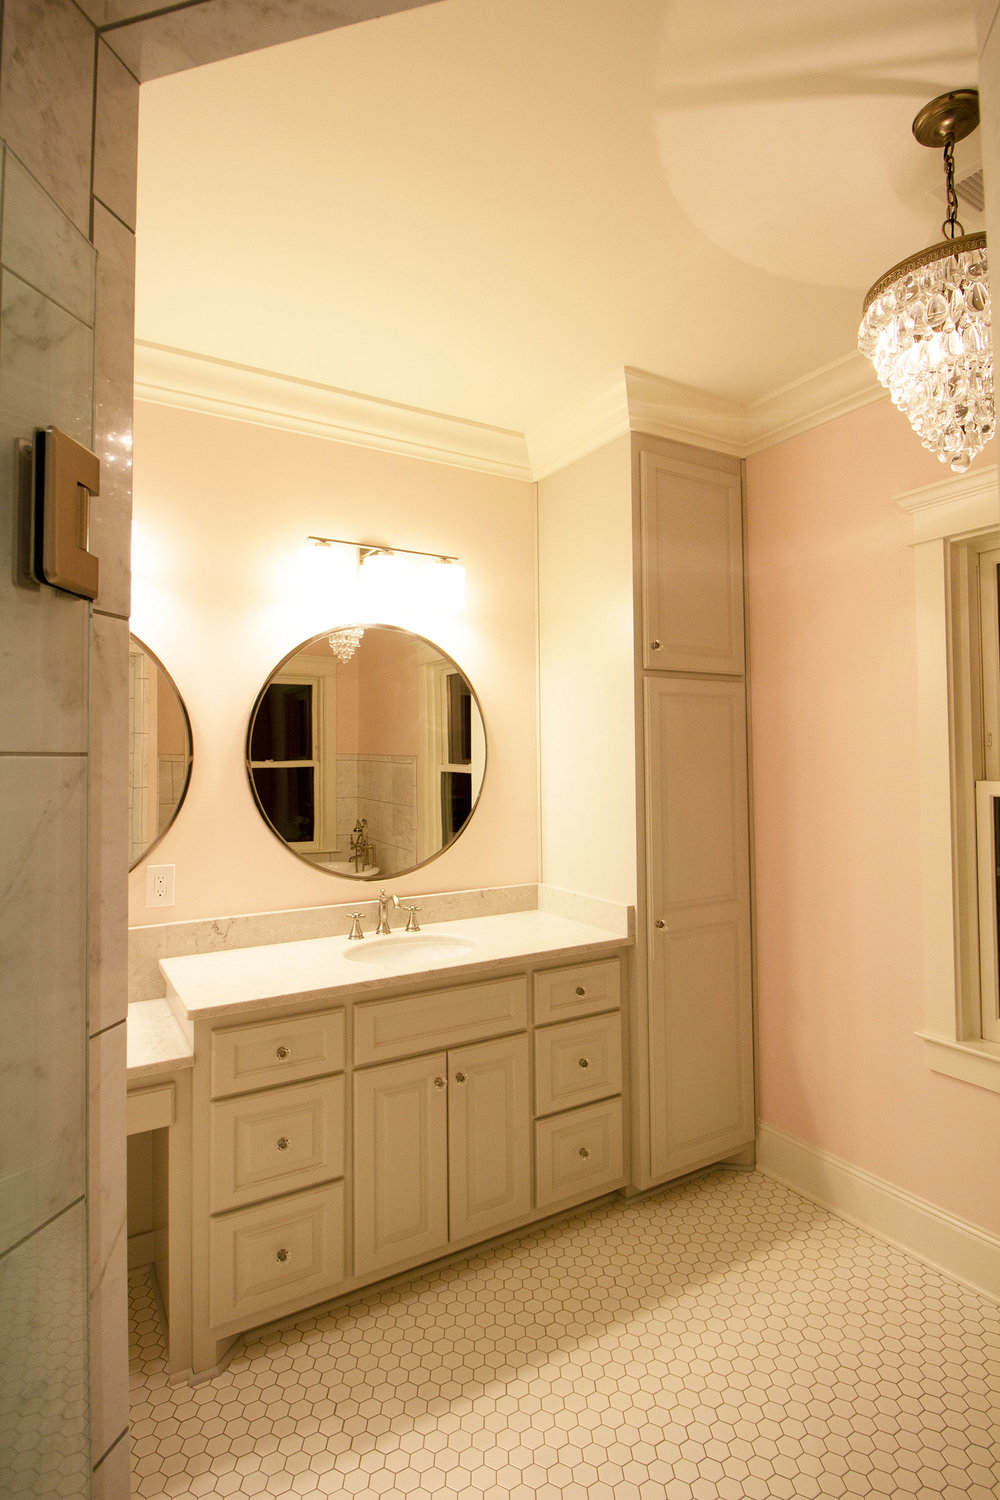 CopperRock Bathroom Design